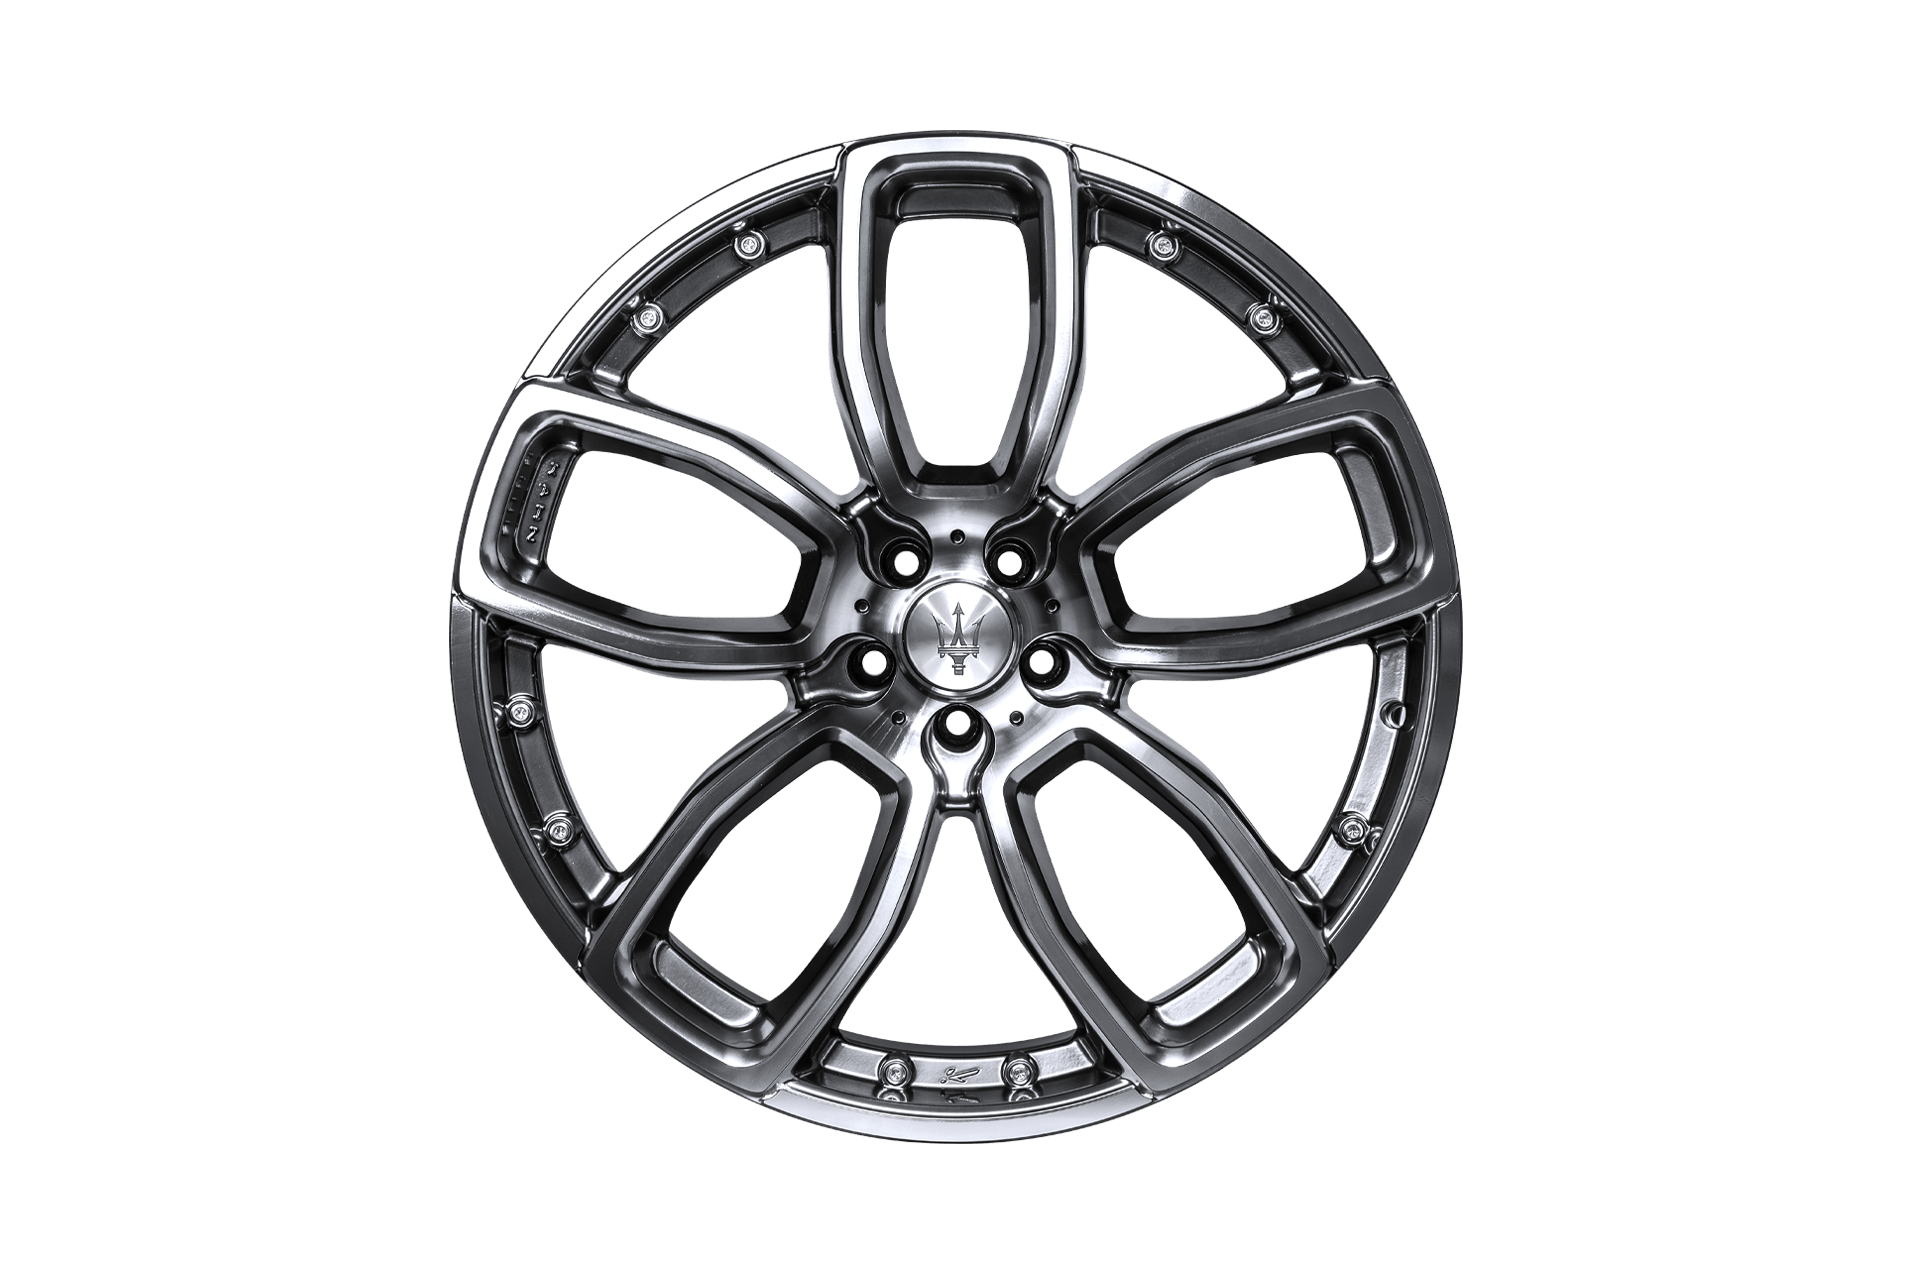 Maserati Levante (2016-2019) 600Le Light Alloy Wheels by Kahn - Image 3567